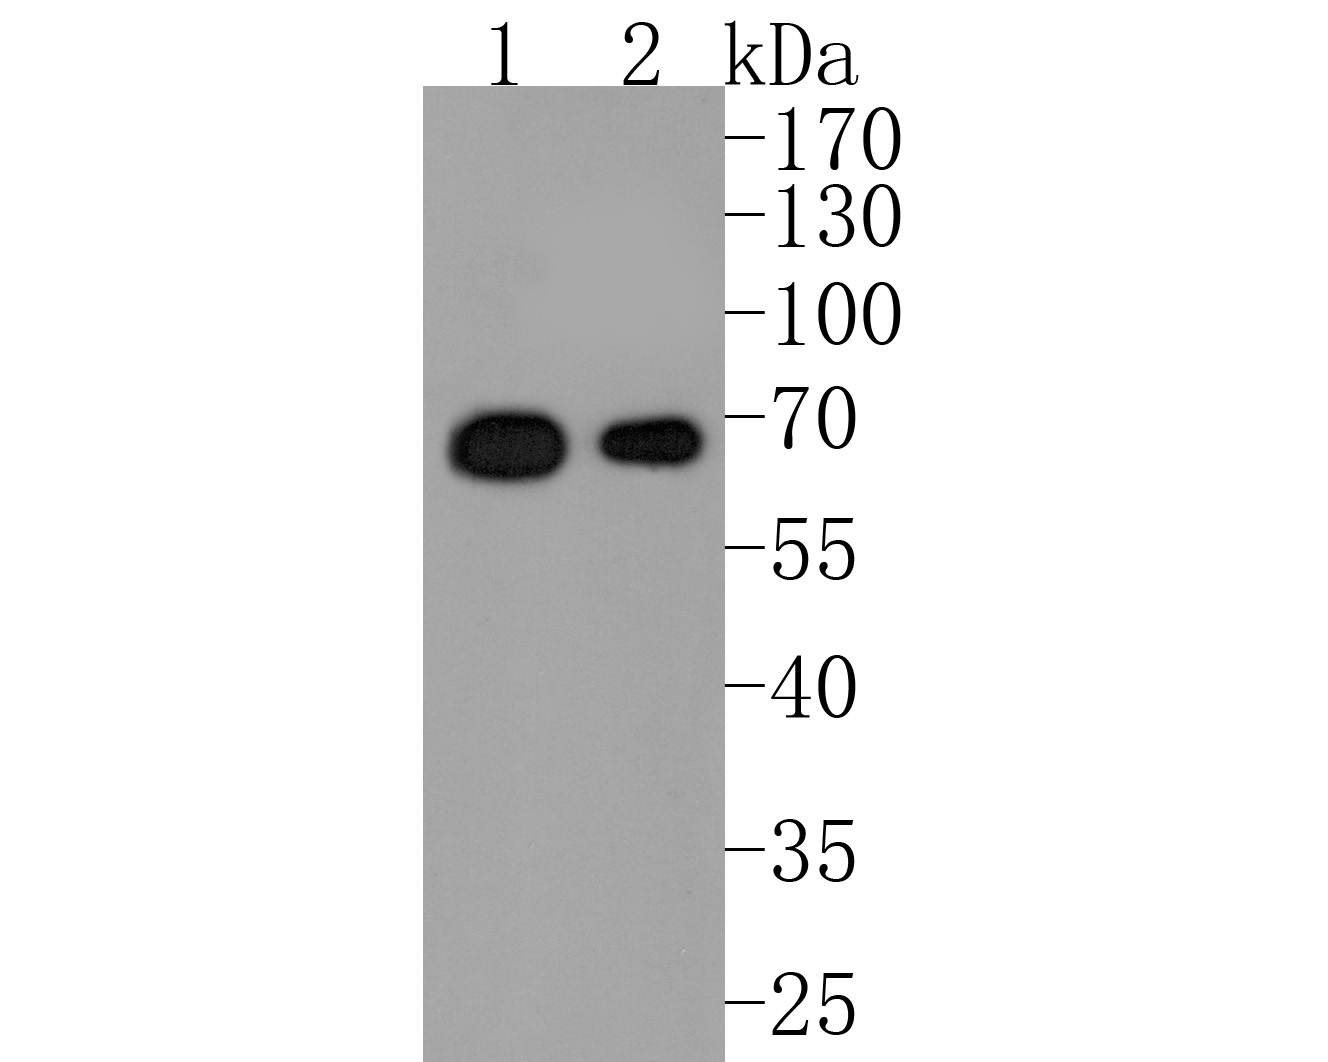 Western blot analysis of A-RAF on different lysates. Proteins were transferred to a PVDF membrane and blocked with 5% BSA in PBS for 1 hour at room temperature. The primary antibody (ET1701-18, 1/500) was used in 5% BSA at room temperature for 2 hours. Goat Anti-Rabbit IgG - HRP Secondary Antibody (HA1001) at 1:200,000 dilution was used for 1 hour at room temperature.<br /> Positive control: <br /> Lane 1: Hela cell lysate<br /> Lane 2: A431 cell lysate